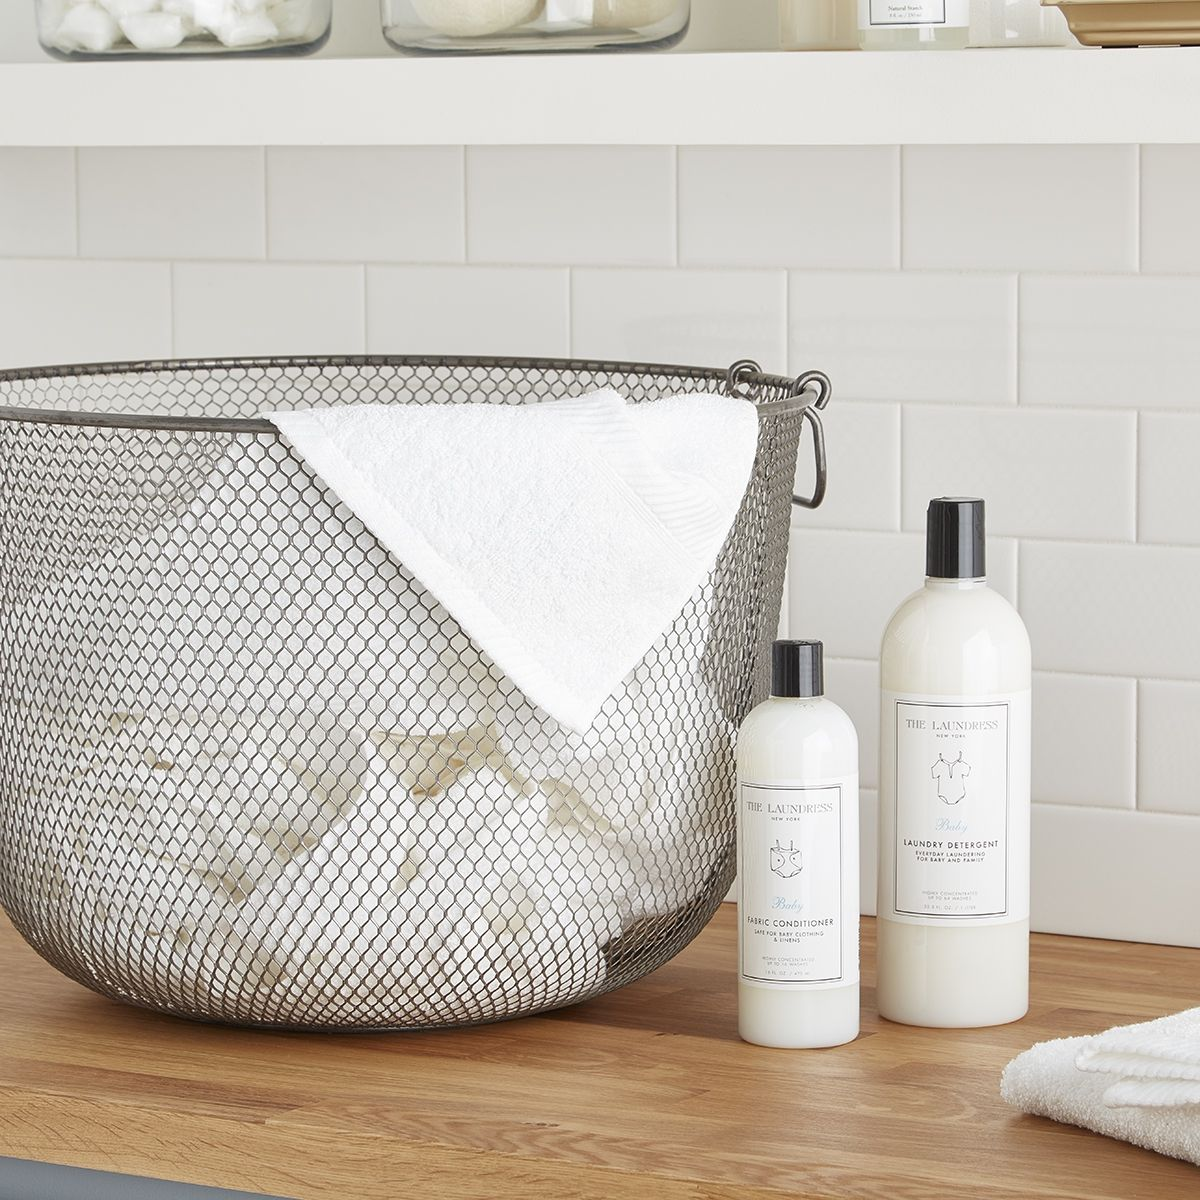 Ecofriendly Laundry Detergent Yes Please Laundry Hamper Basket Stackable Laundry Baskets